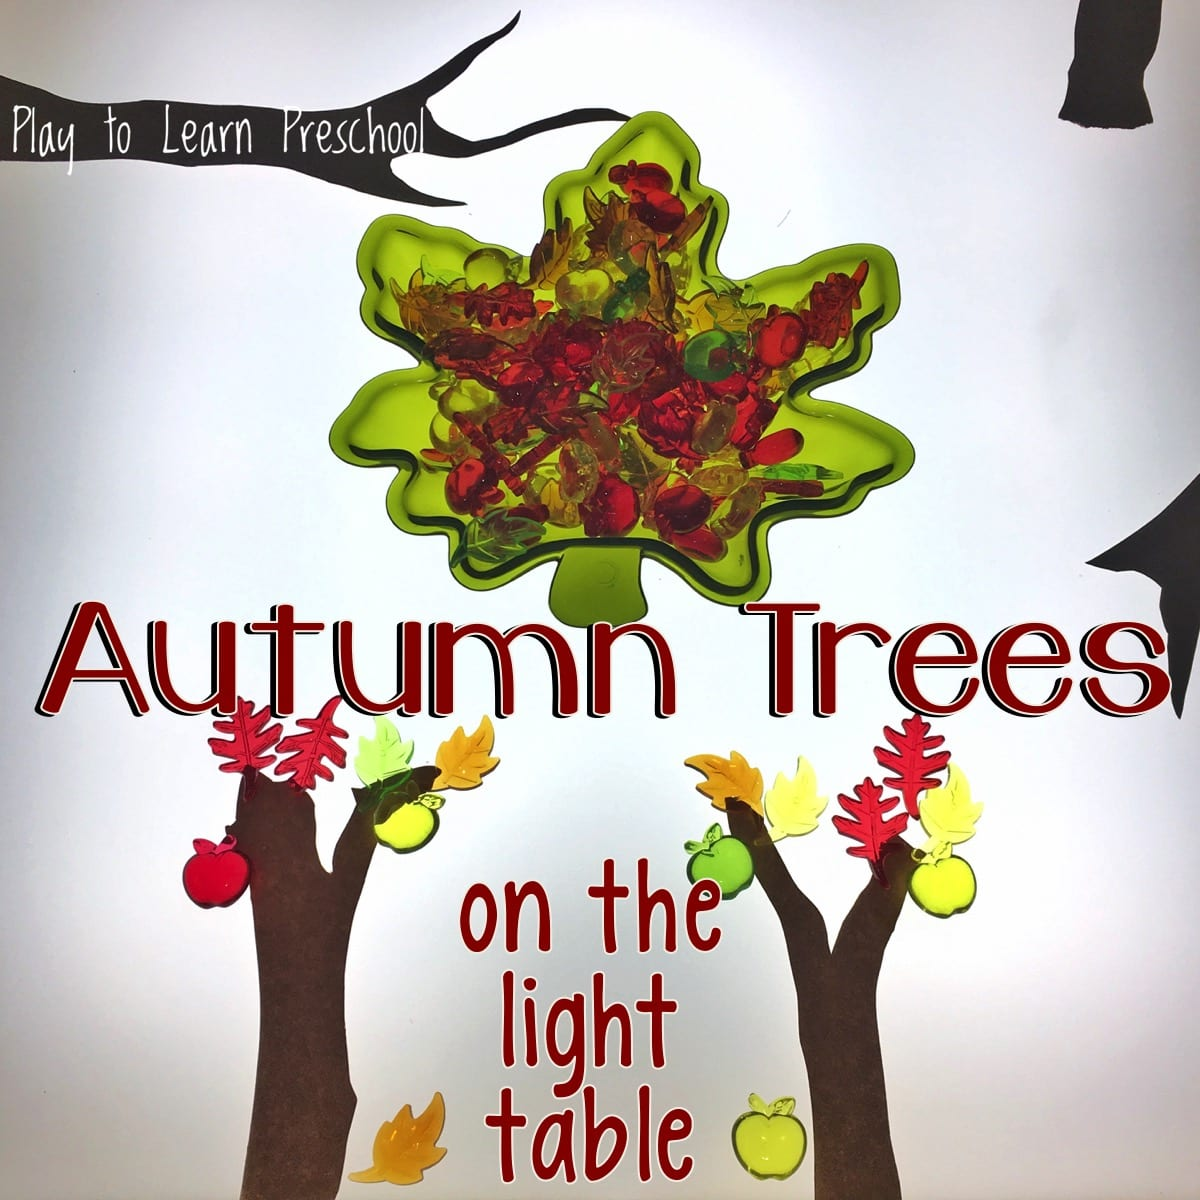 Autumn Tree Art on the Light Table